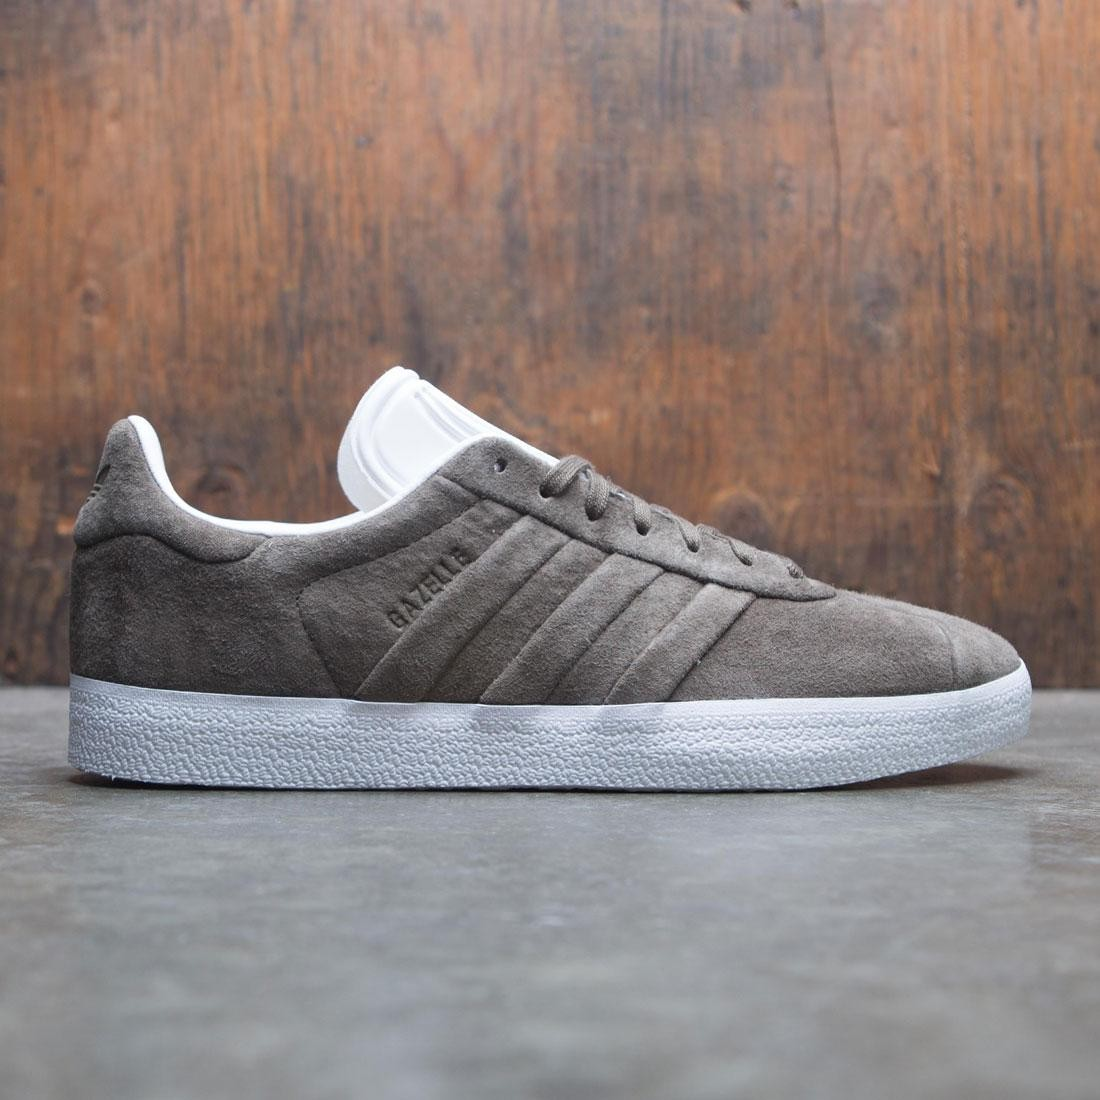 【海外限定】アディダス ガゼル メンズ靴 靴 【 ADIDAS MEN GAZELLE STITCH AND TURN OLIVE BRANCH FOOTWEAR WHITE 】